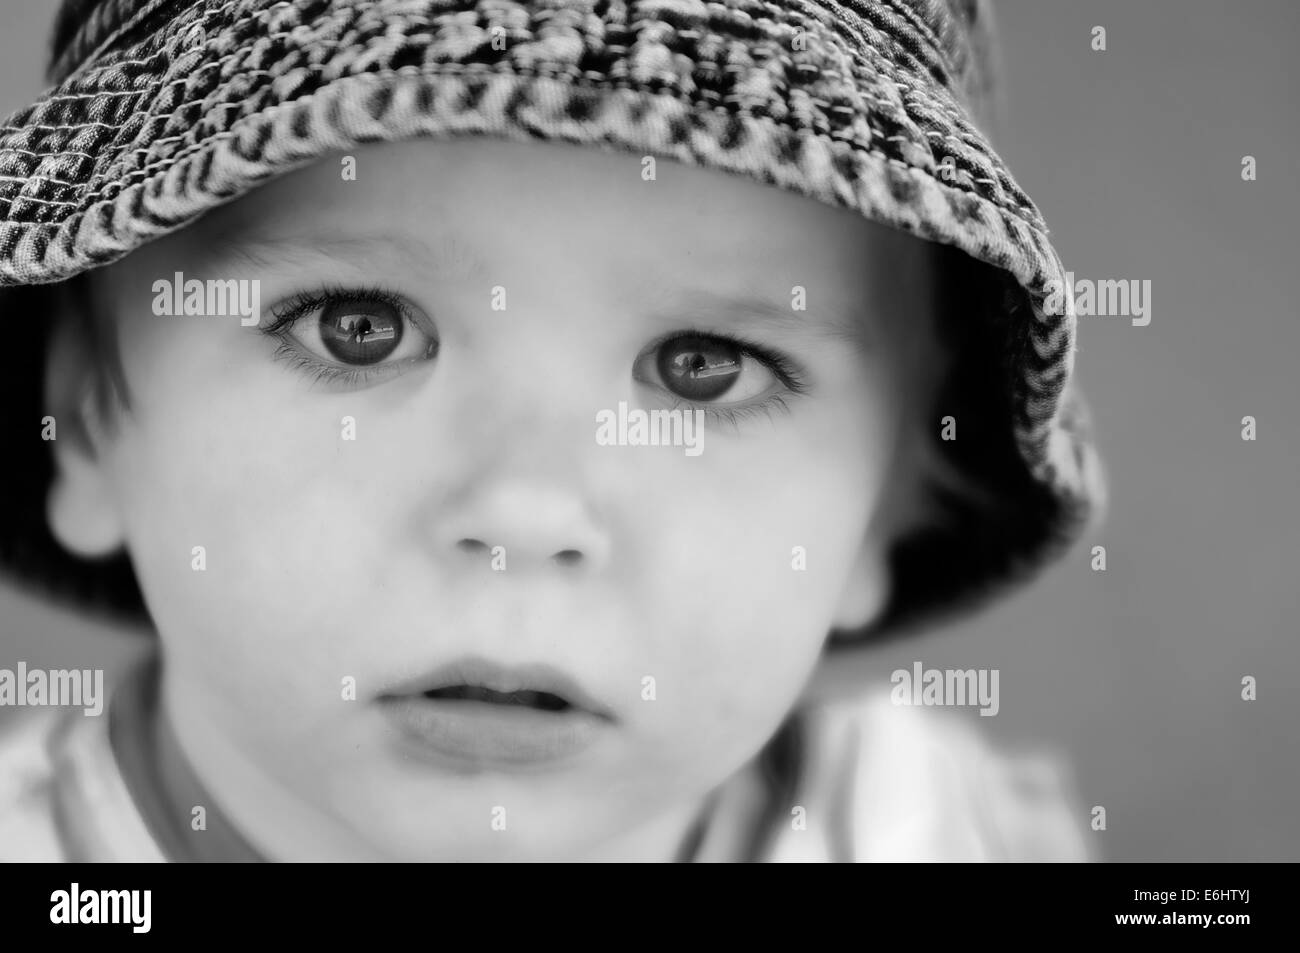 portrait-of-a-beautiful-2-yr-old-boy-looking-straight-into-the-camera-E6HTYJ.jpg